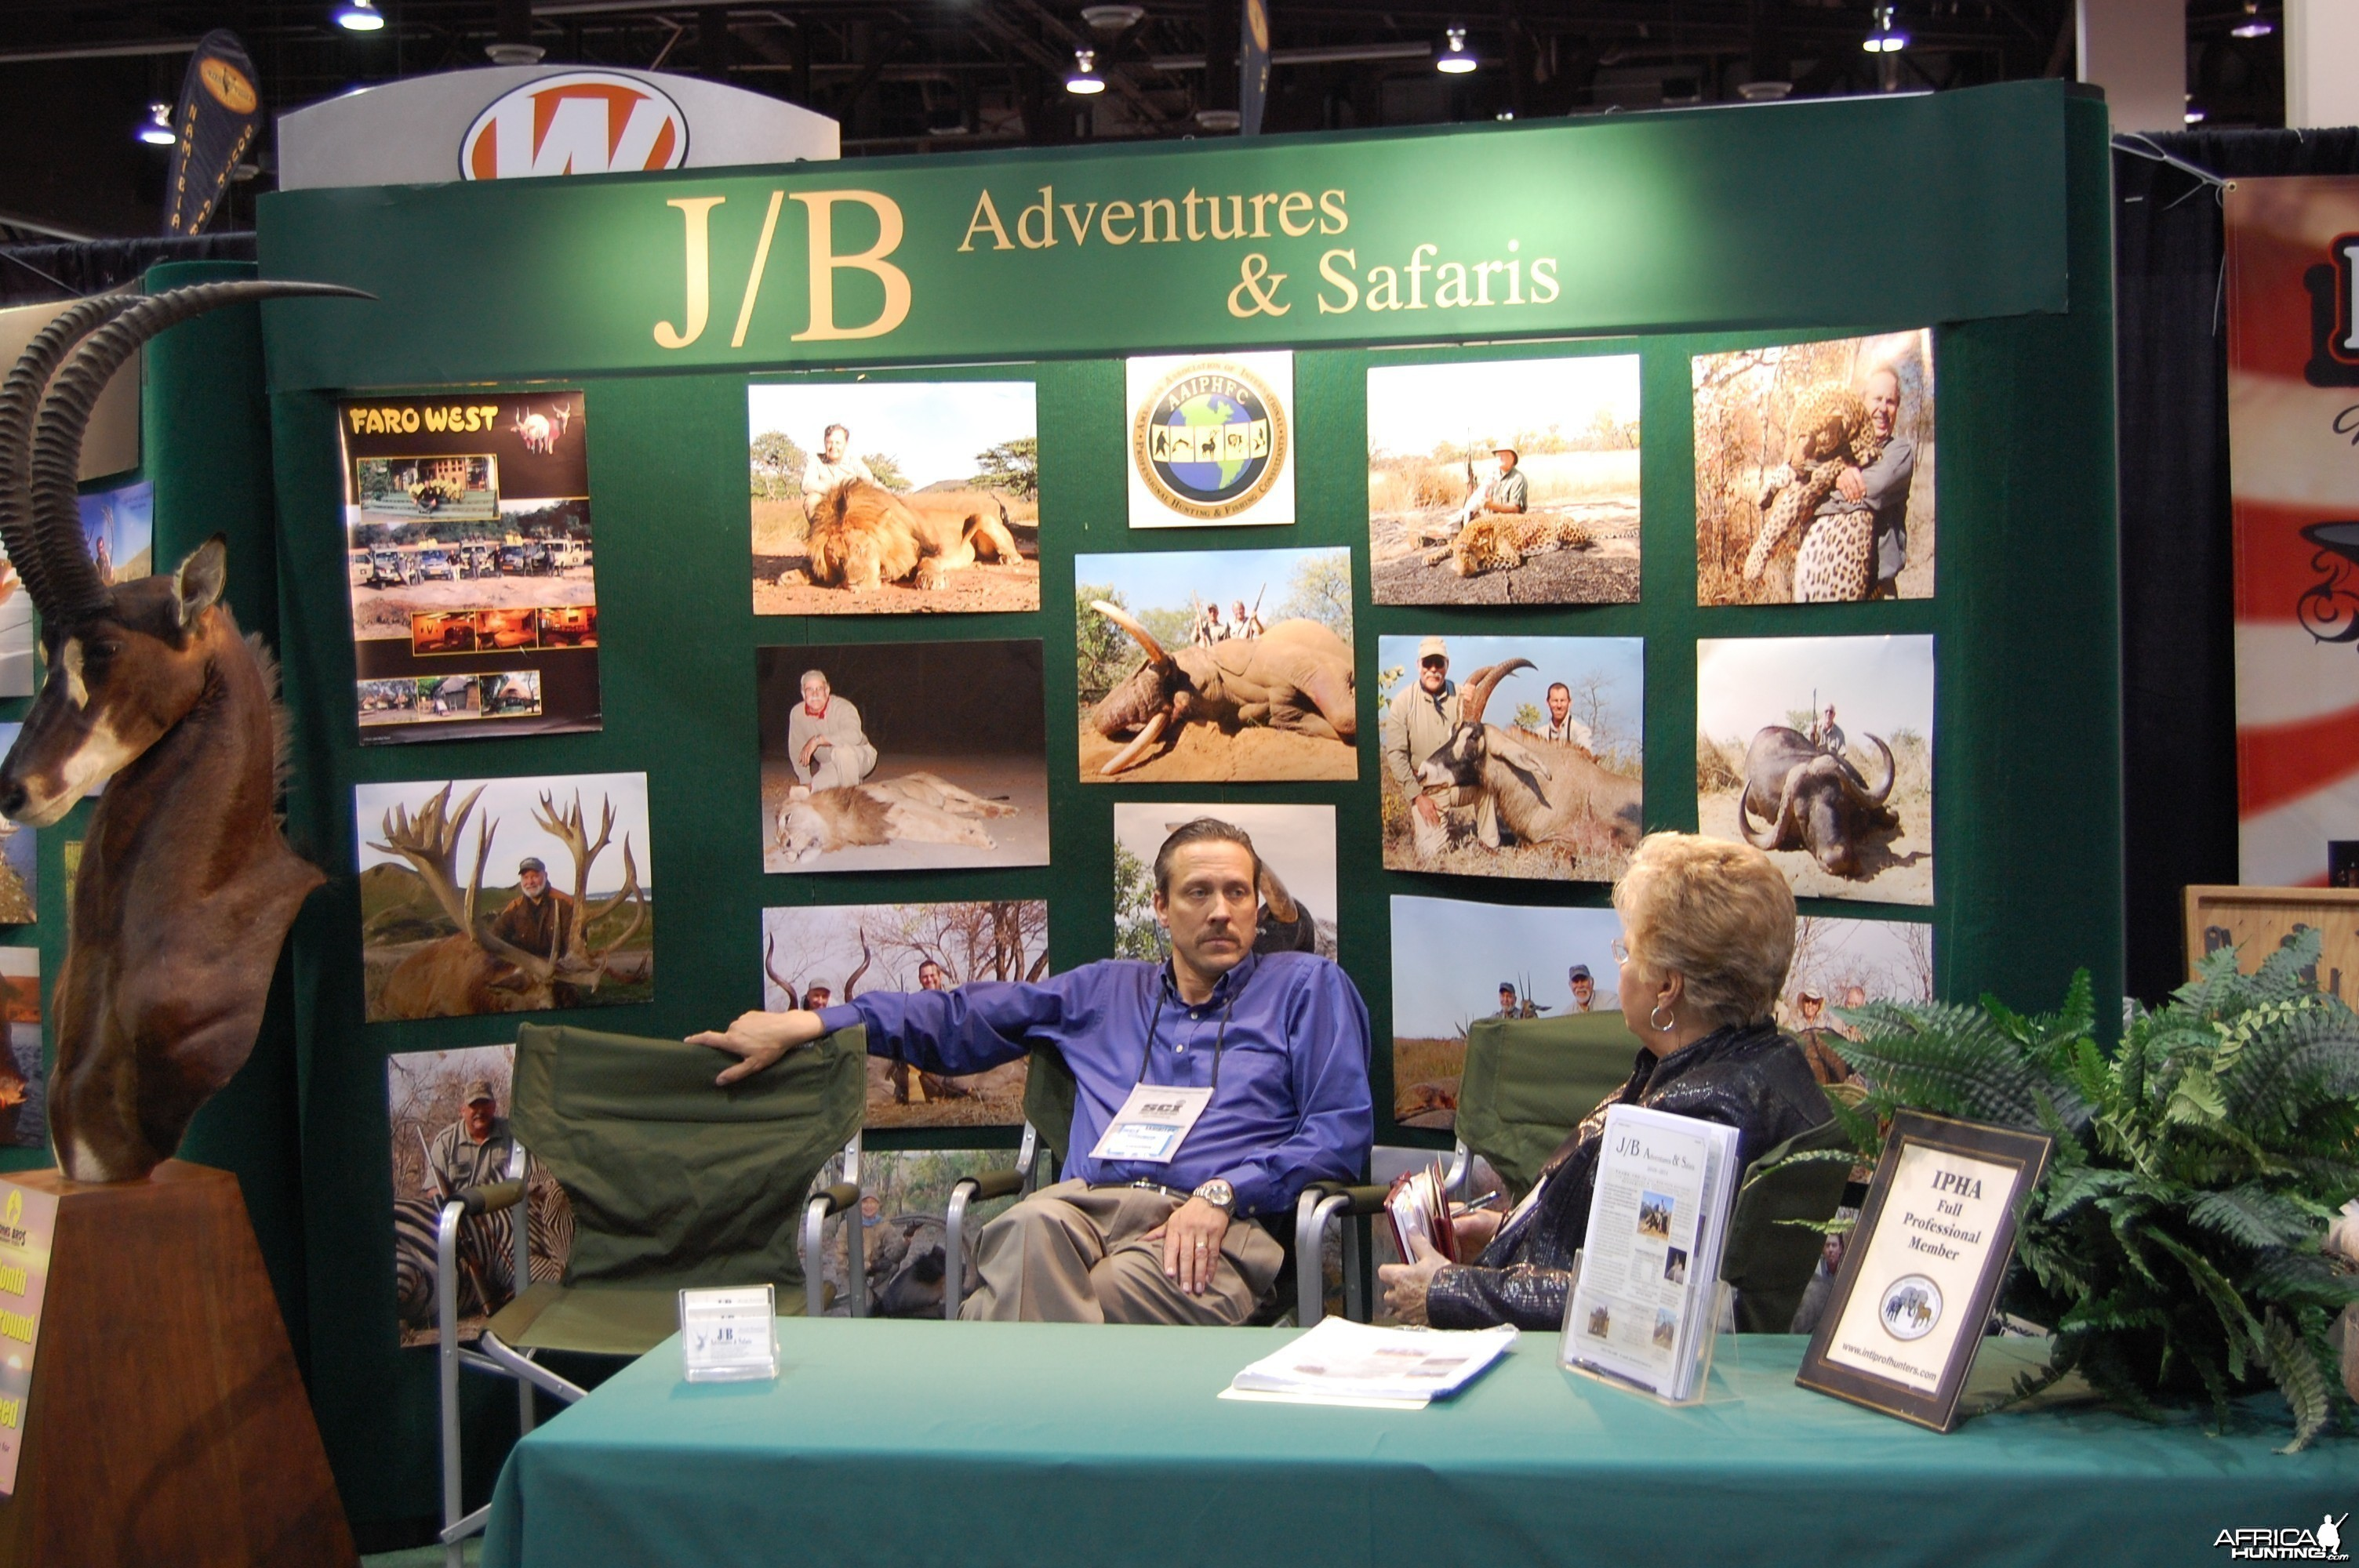 J/B Adventures & Safaris